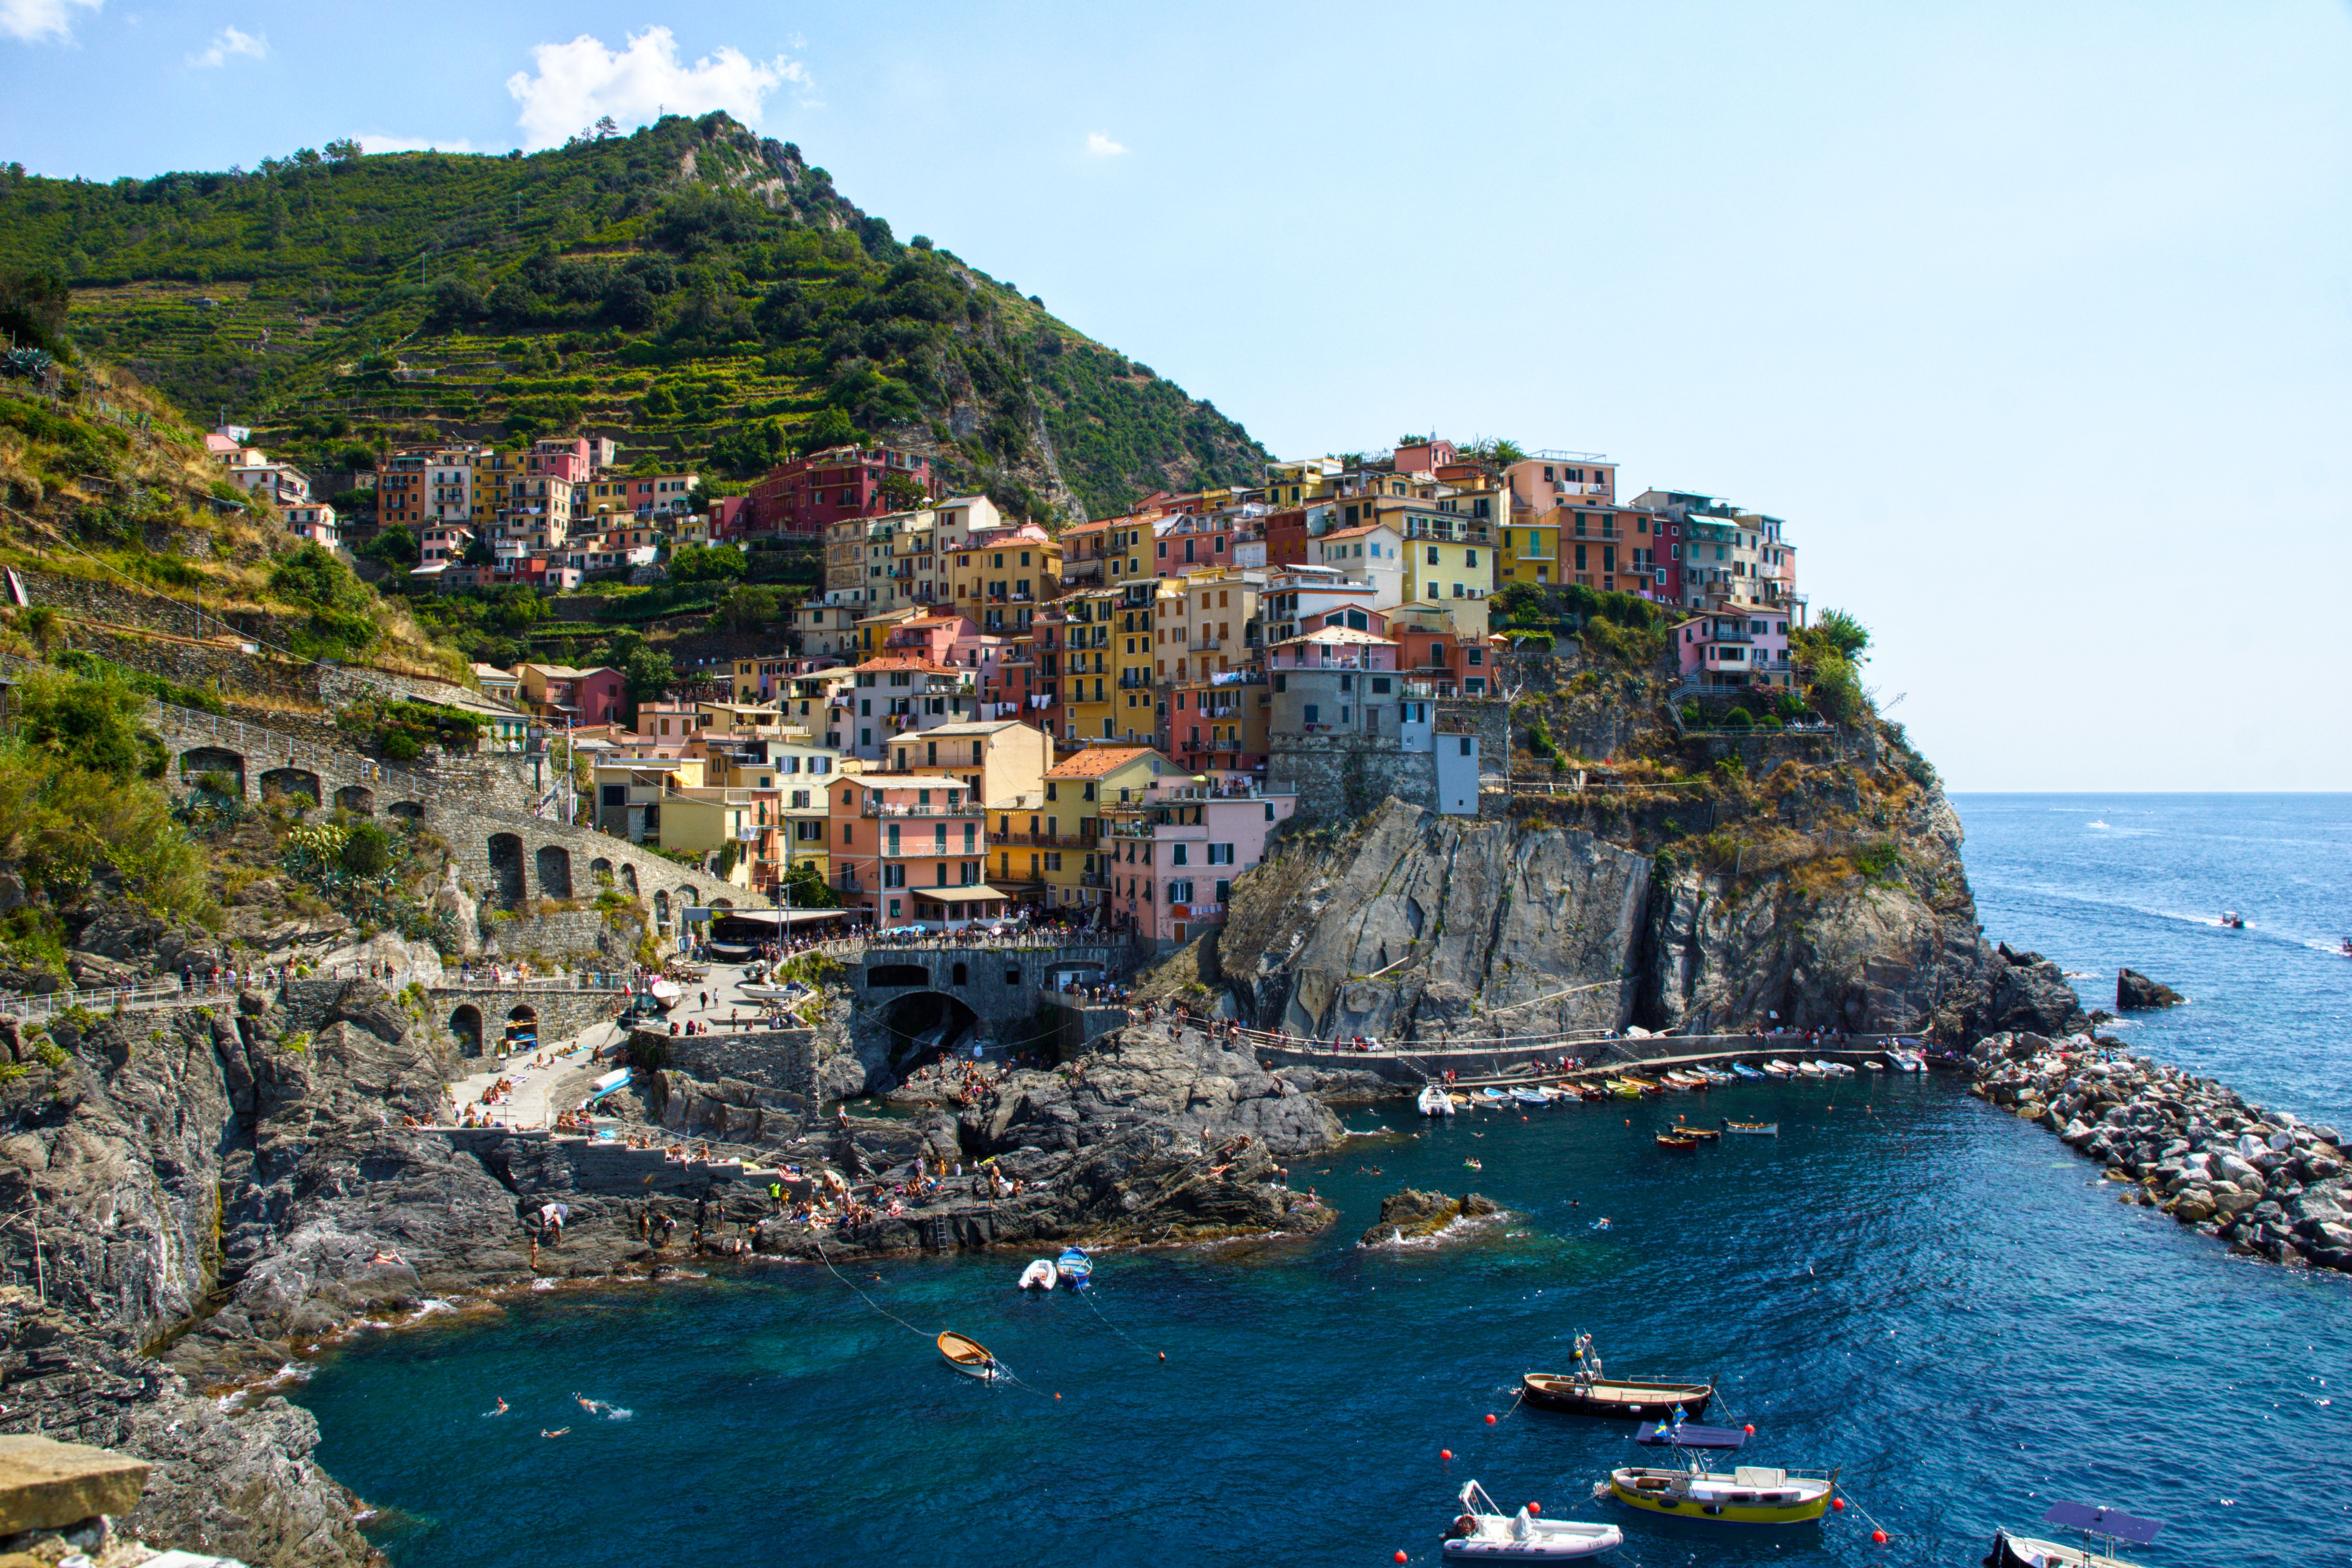 europe, hiking, travel, tips, localbini, biniblog, adventure, experience, local, authentic, mountains, scenery, hiking, italy, cinque terre, mountain, cliffs